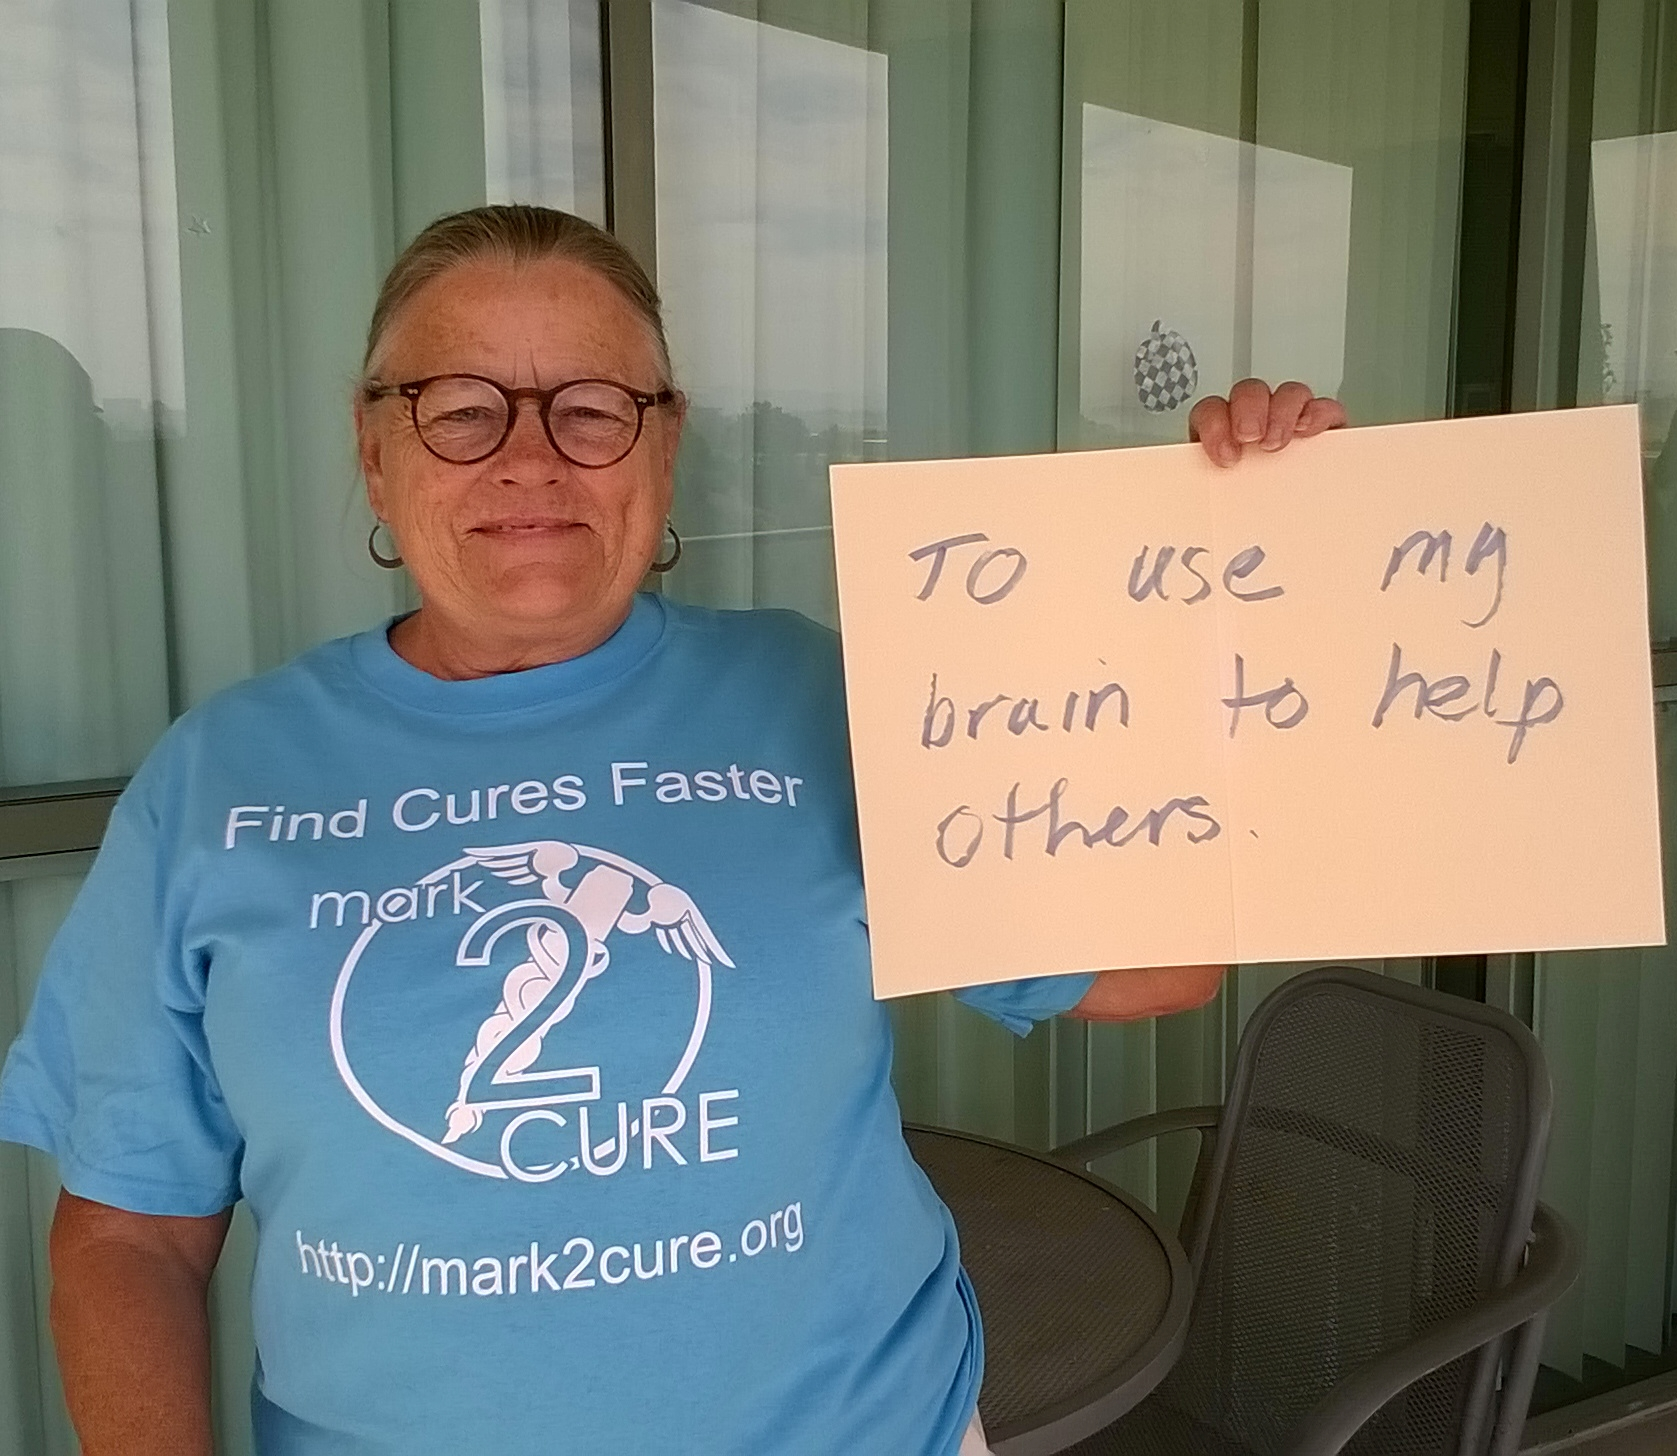 Pam, one of our awesome Mark2Curators, provides care for her father who suffers from Alzheimer Disease.  Like her shirt? Enter our photo contest to win one.